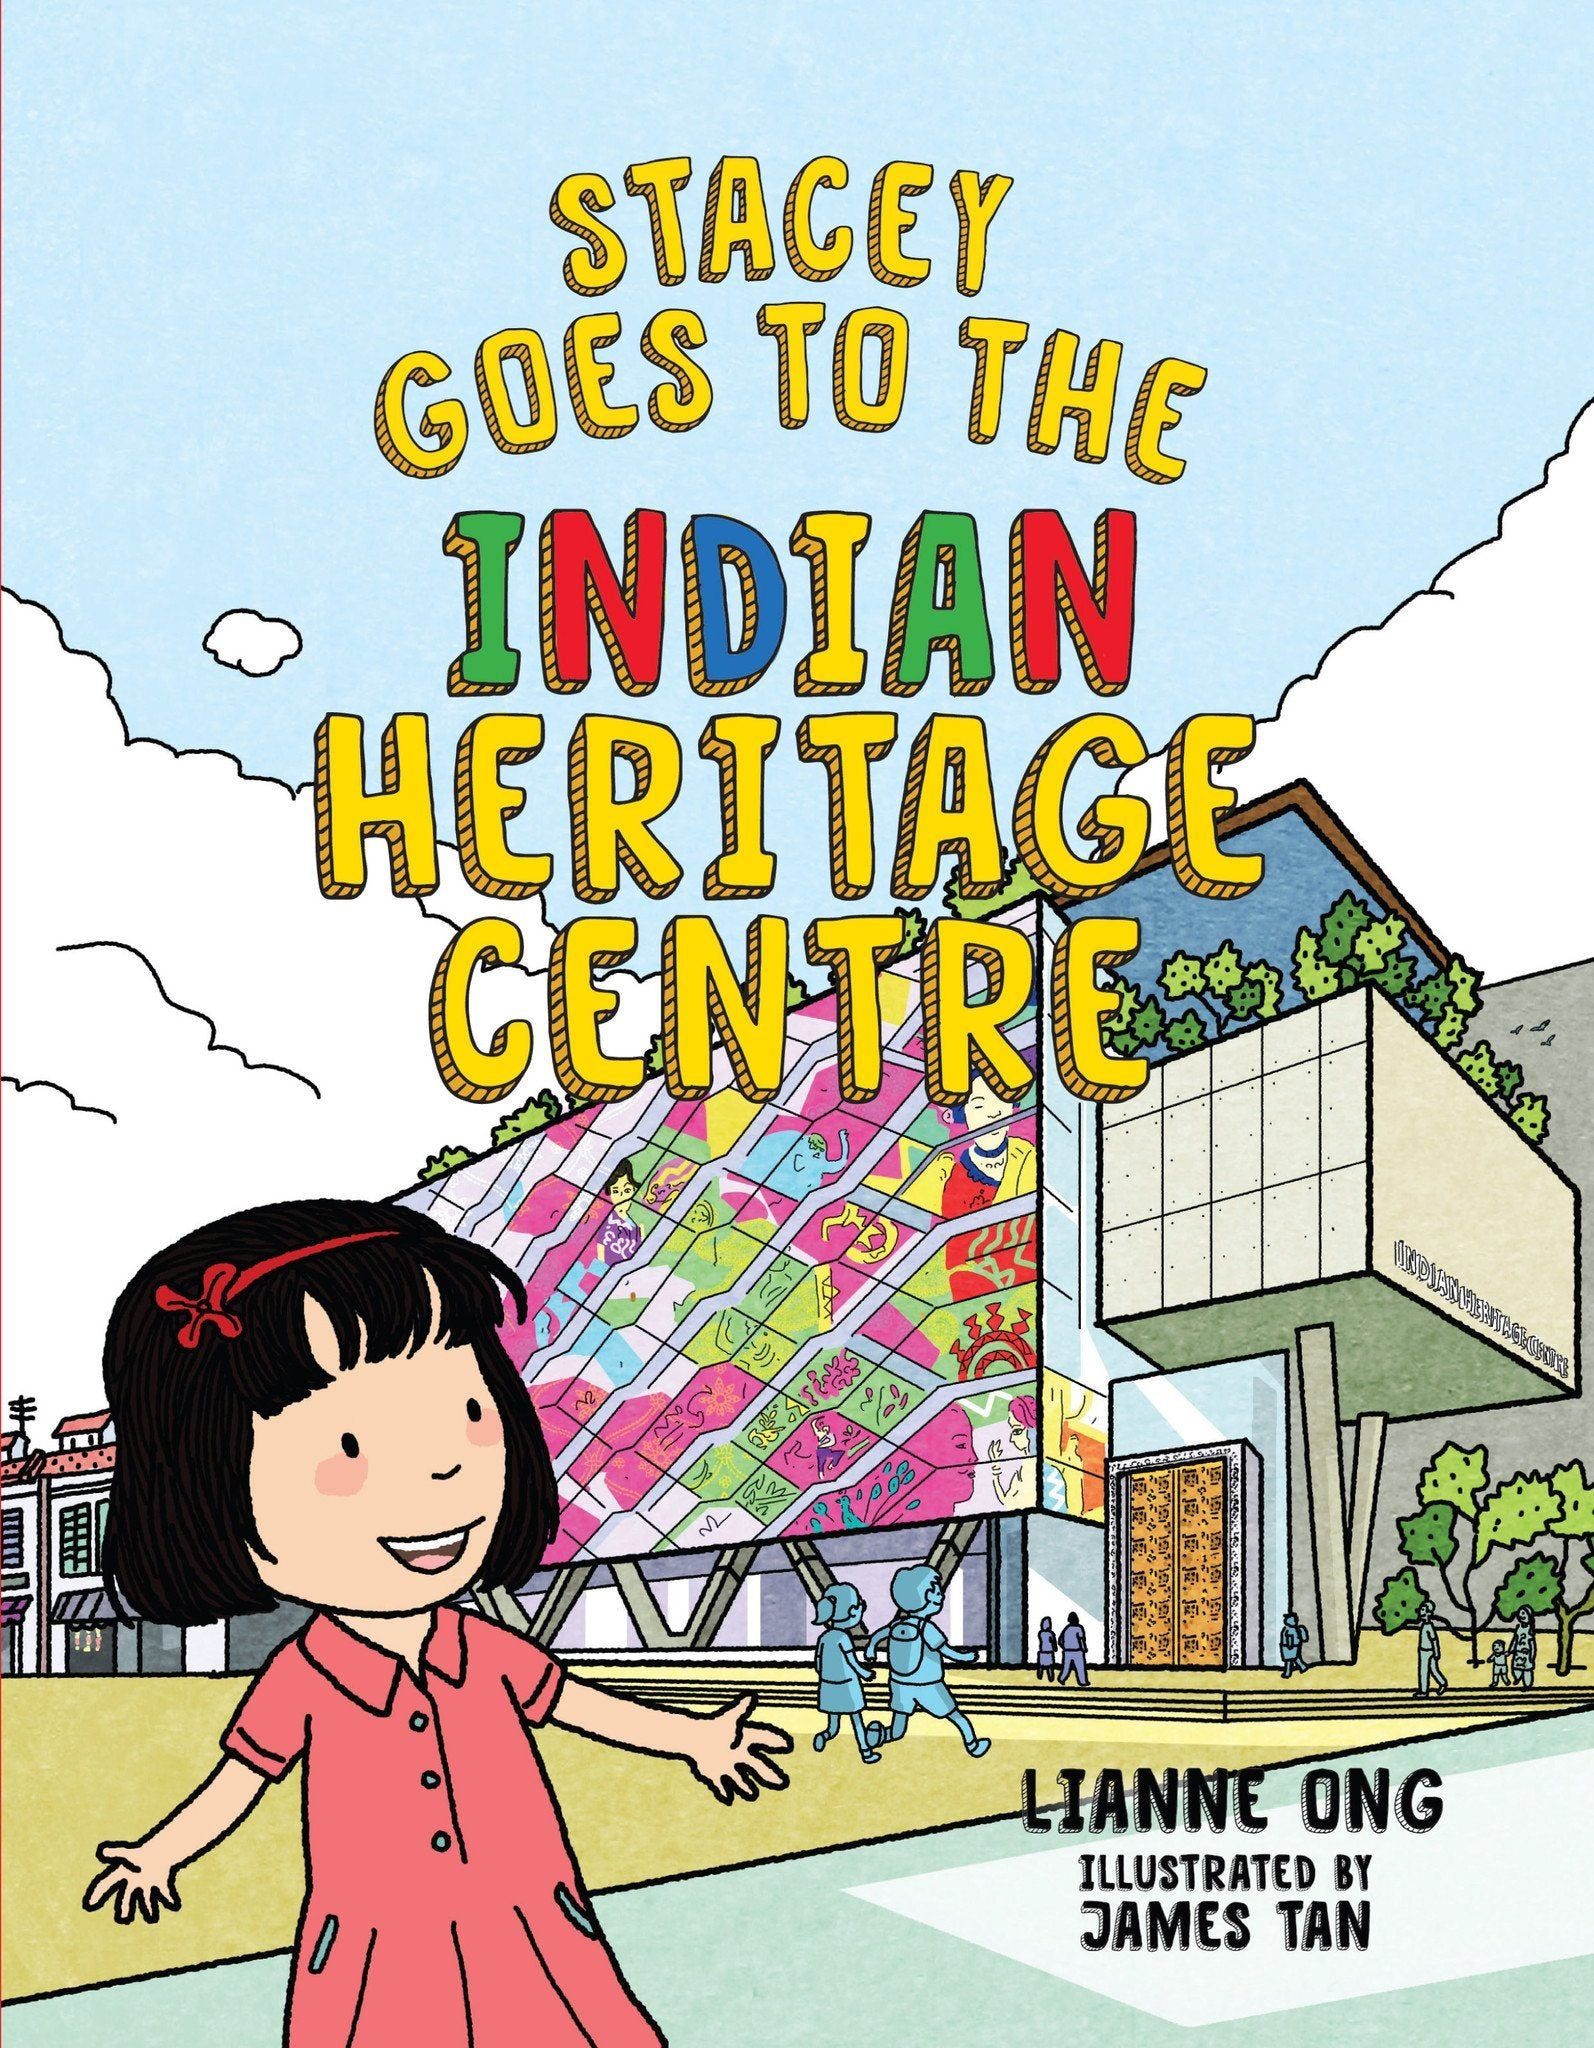 Stacey Goes to the Indian Heritage Centre (Children's Book) - Local Children Books - Lianne Ong - Naiise